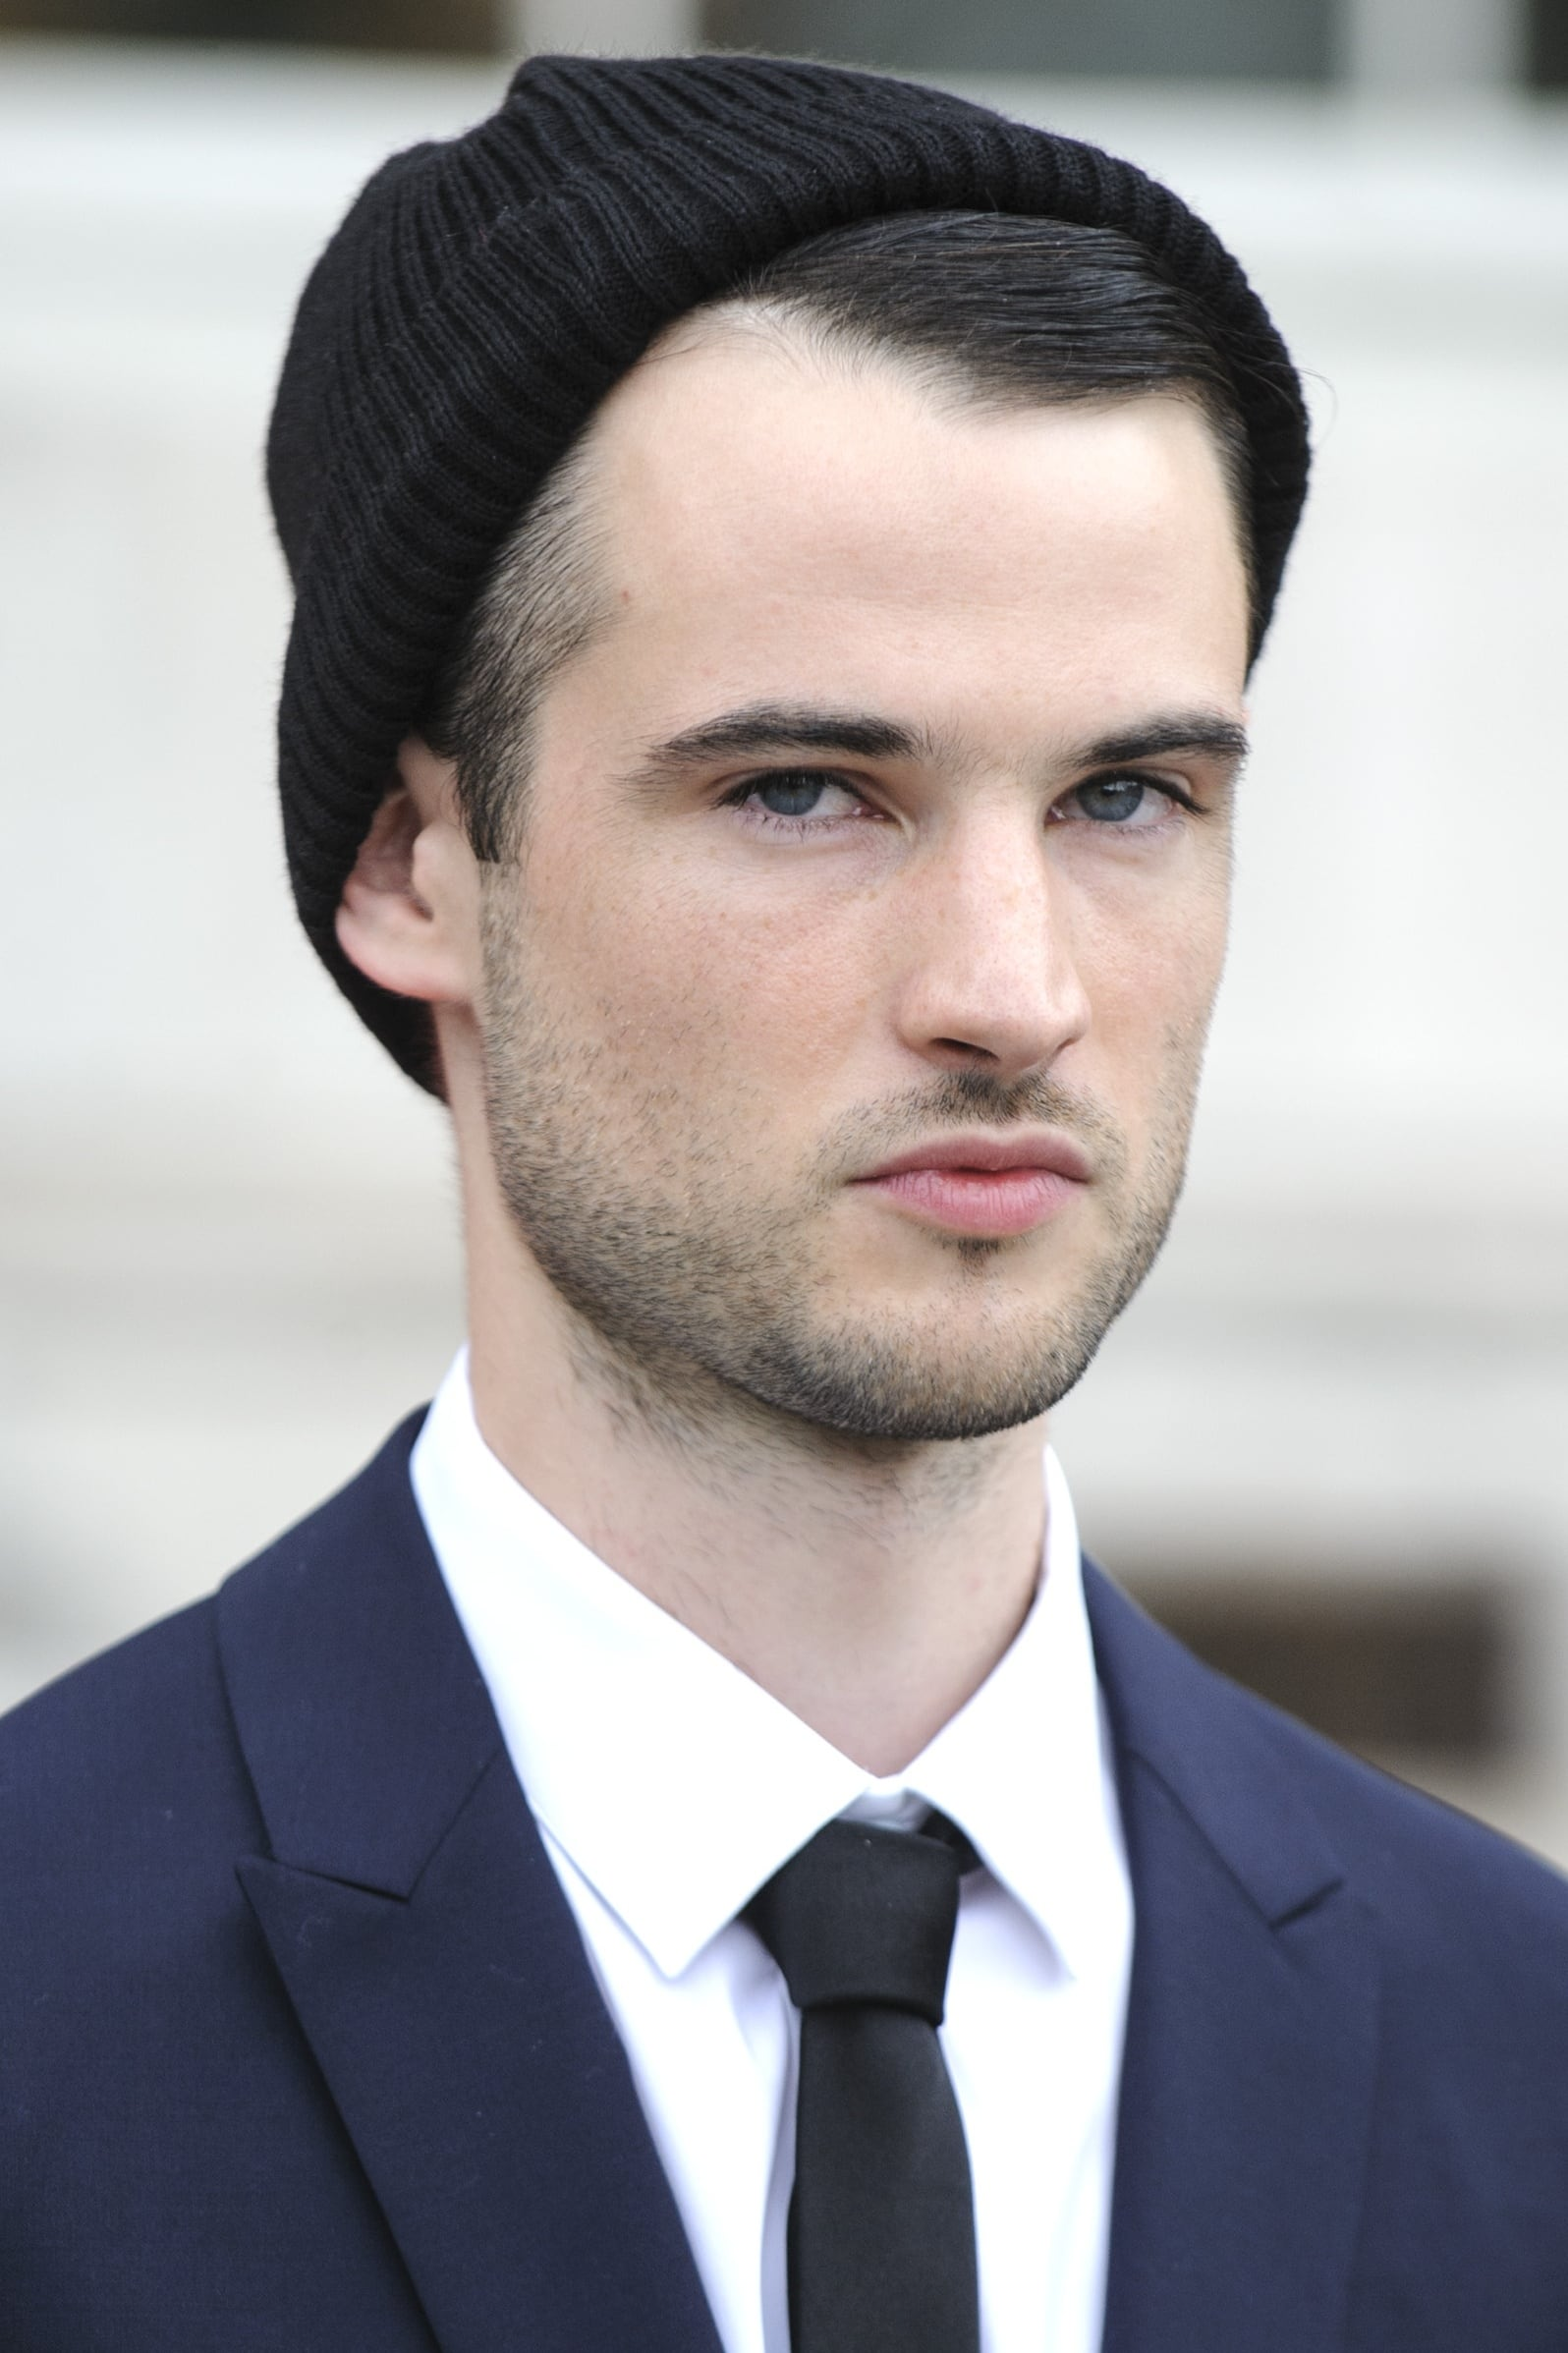 Forum on this topic: Surbhi Chandna 	2014, tom-sturridge-born-1985/